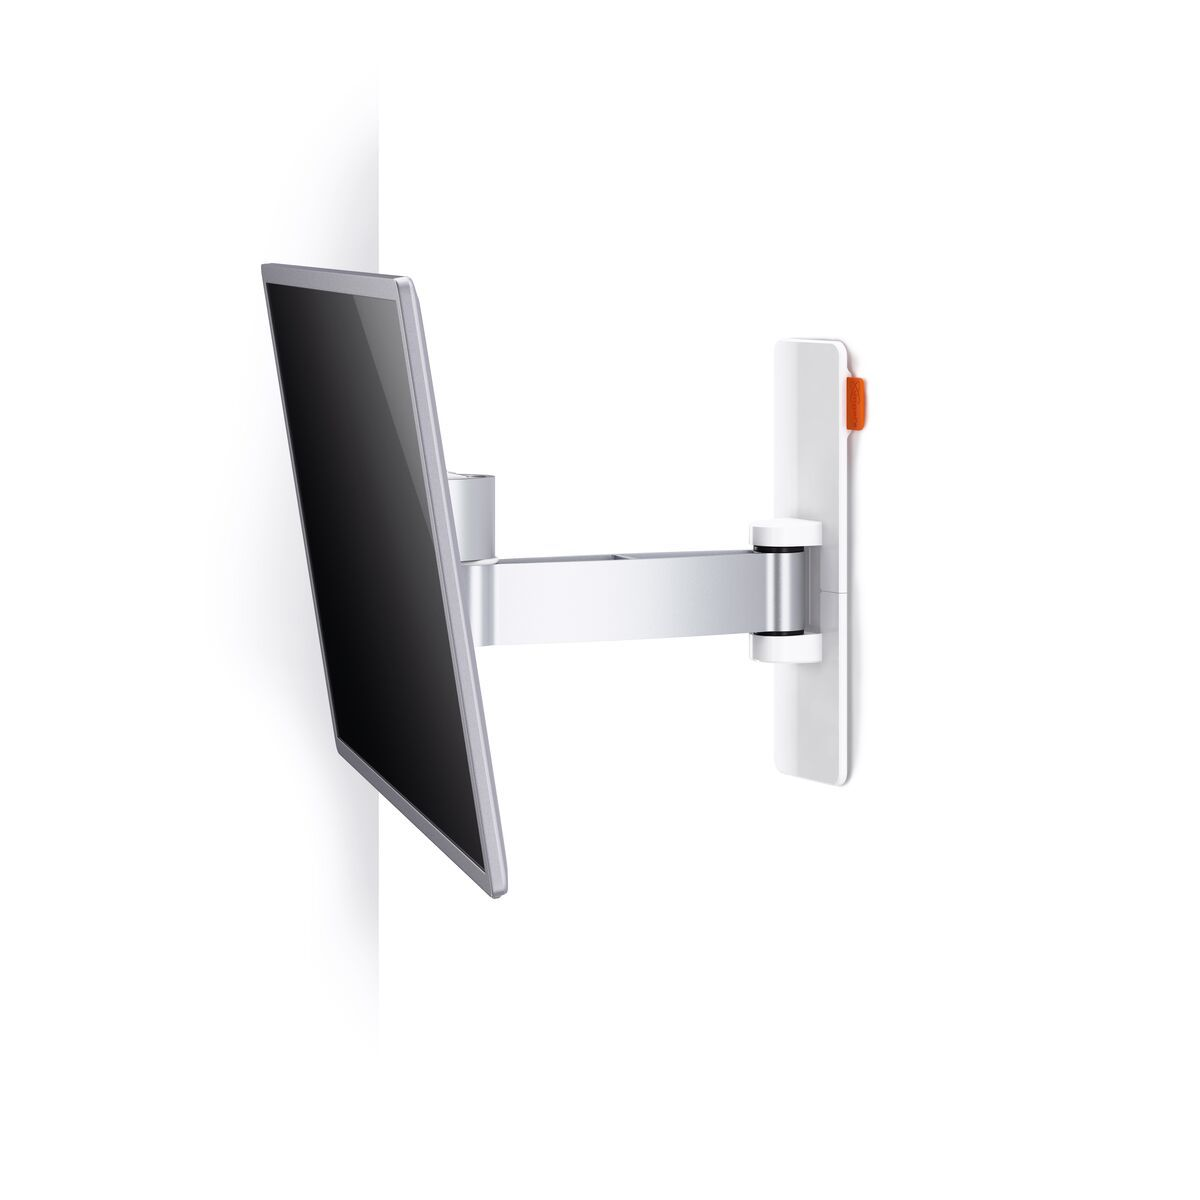 Vogel's WALL 2025 Full-Motion TV Wall Mount (white) - Suitable for 17 up to 26 inch TVs - Motion (up to 120°) - Tilt -10°/+10° - Detail